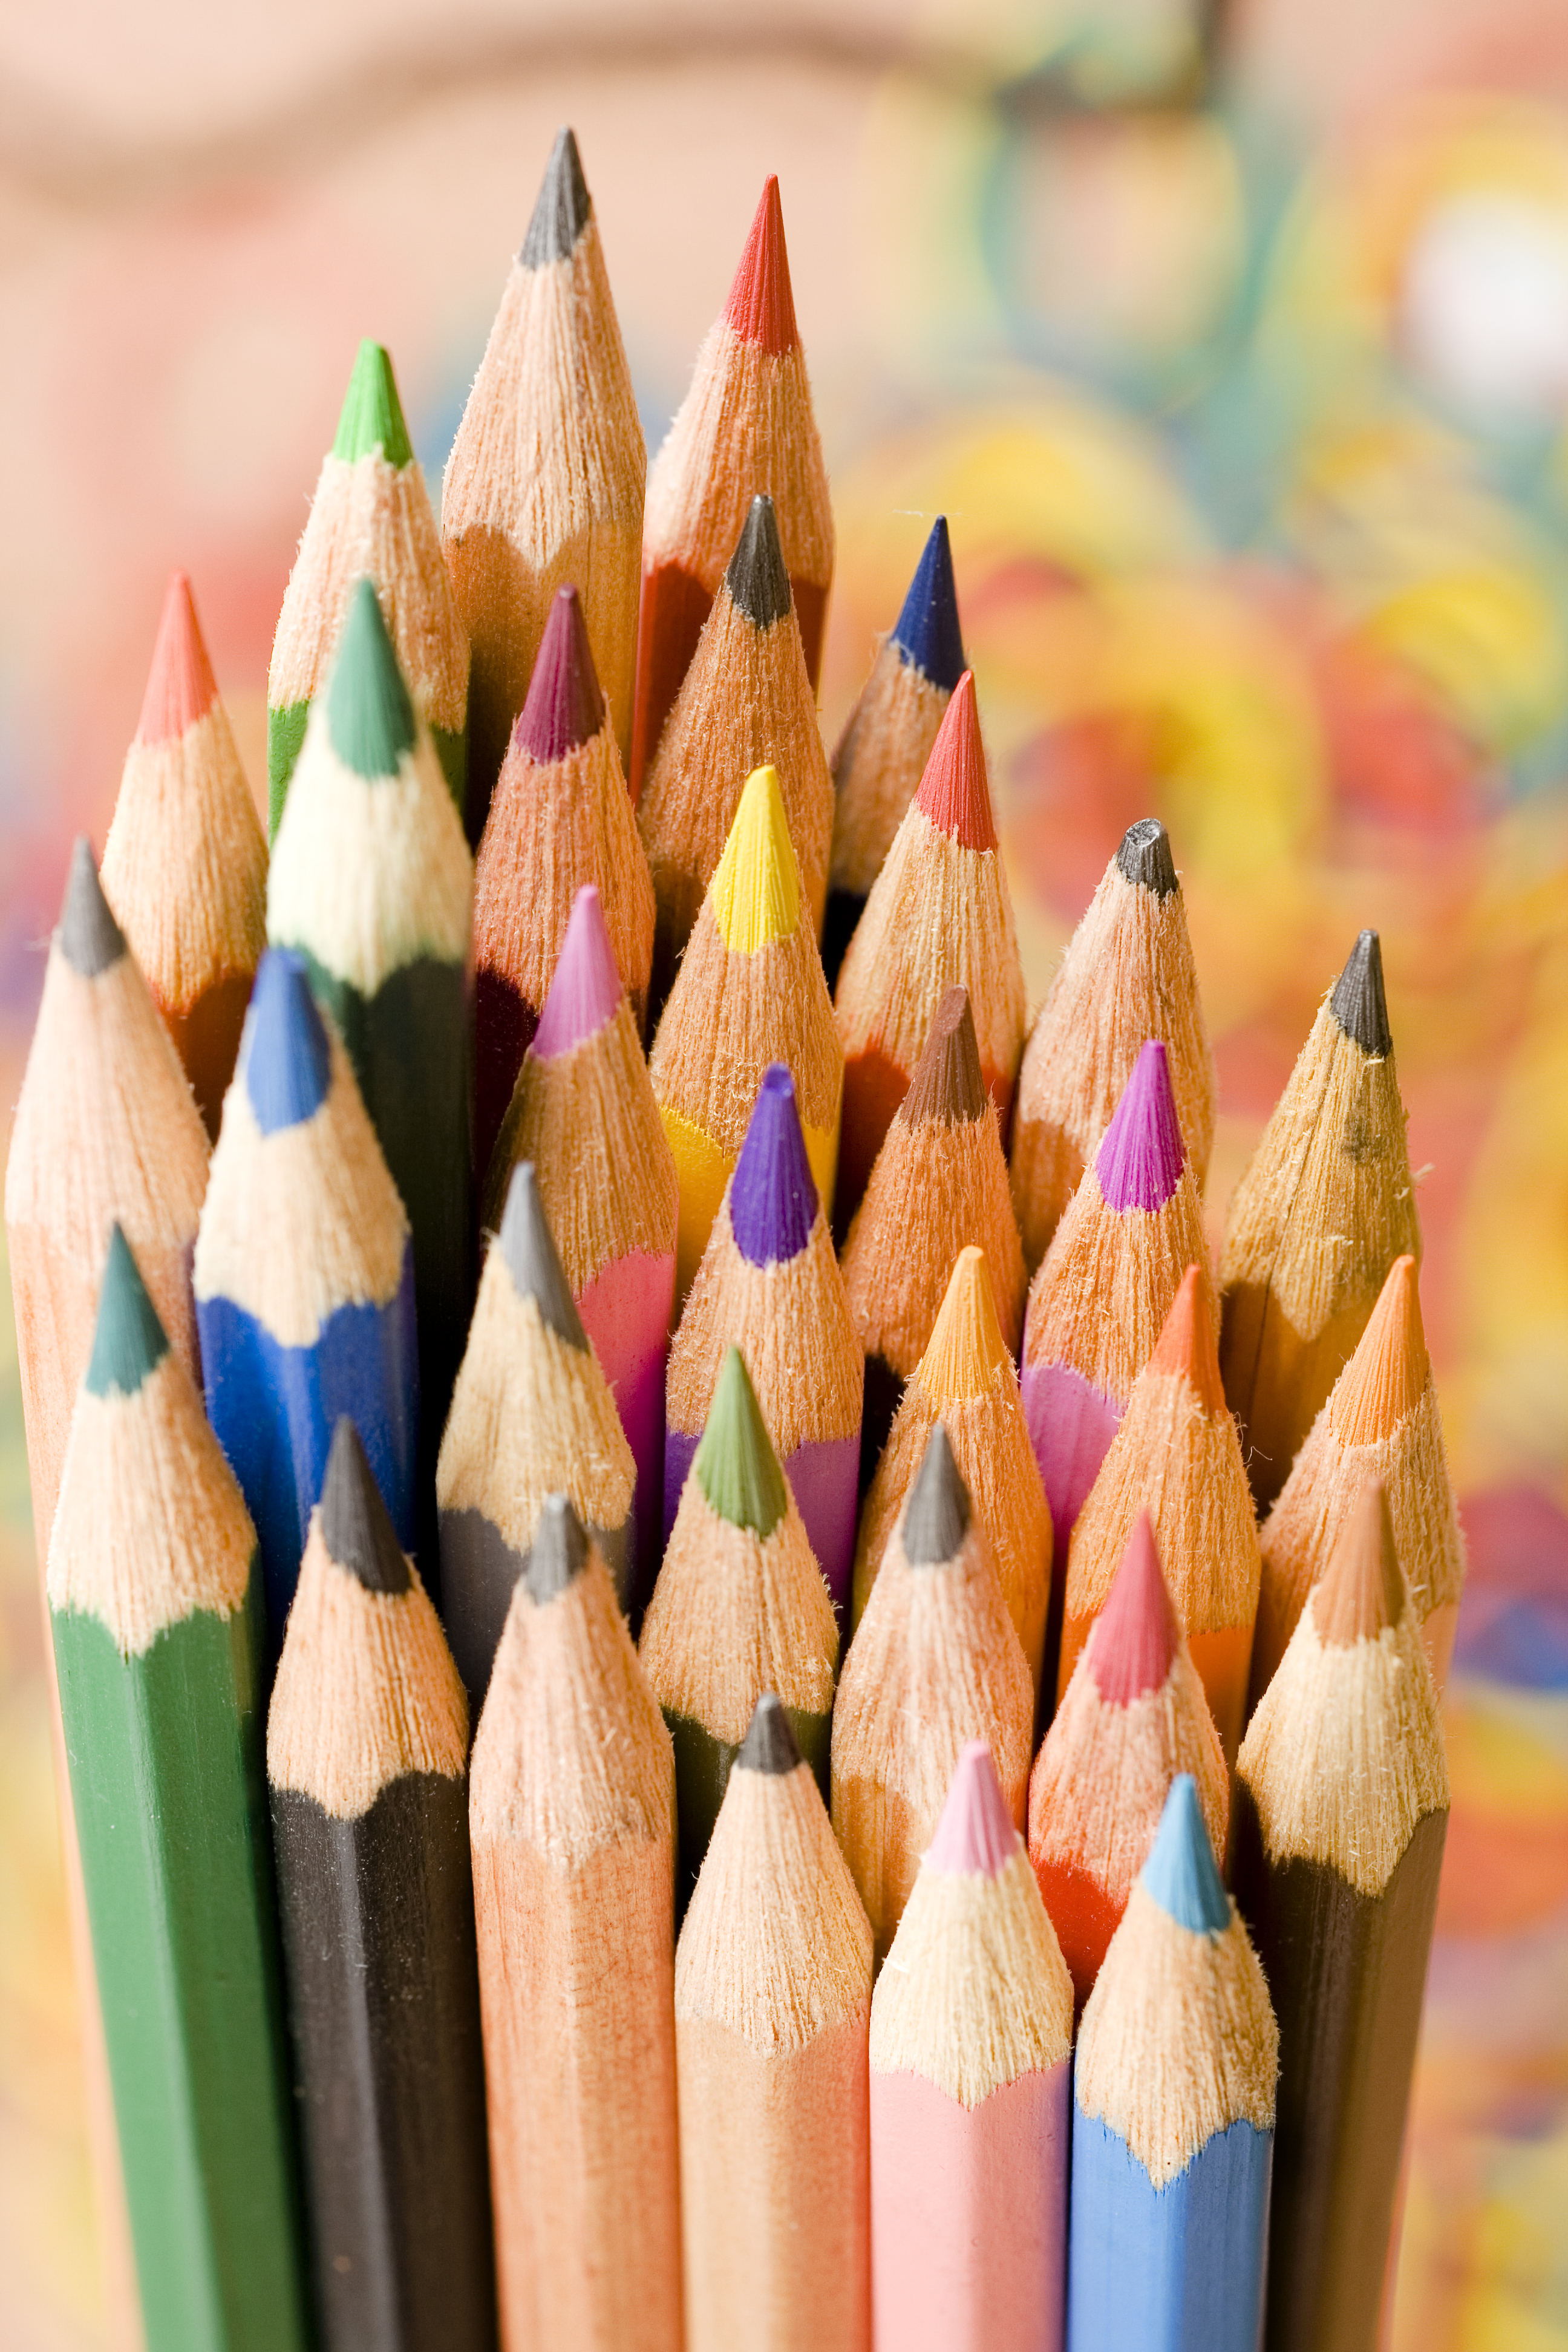 pencils, Art, Wooden, Wood, White, HQ Photo